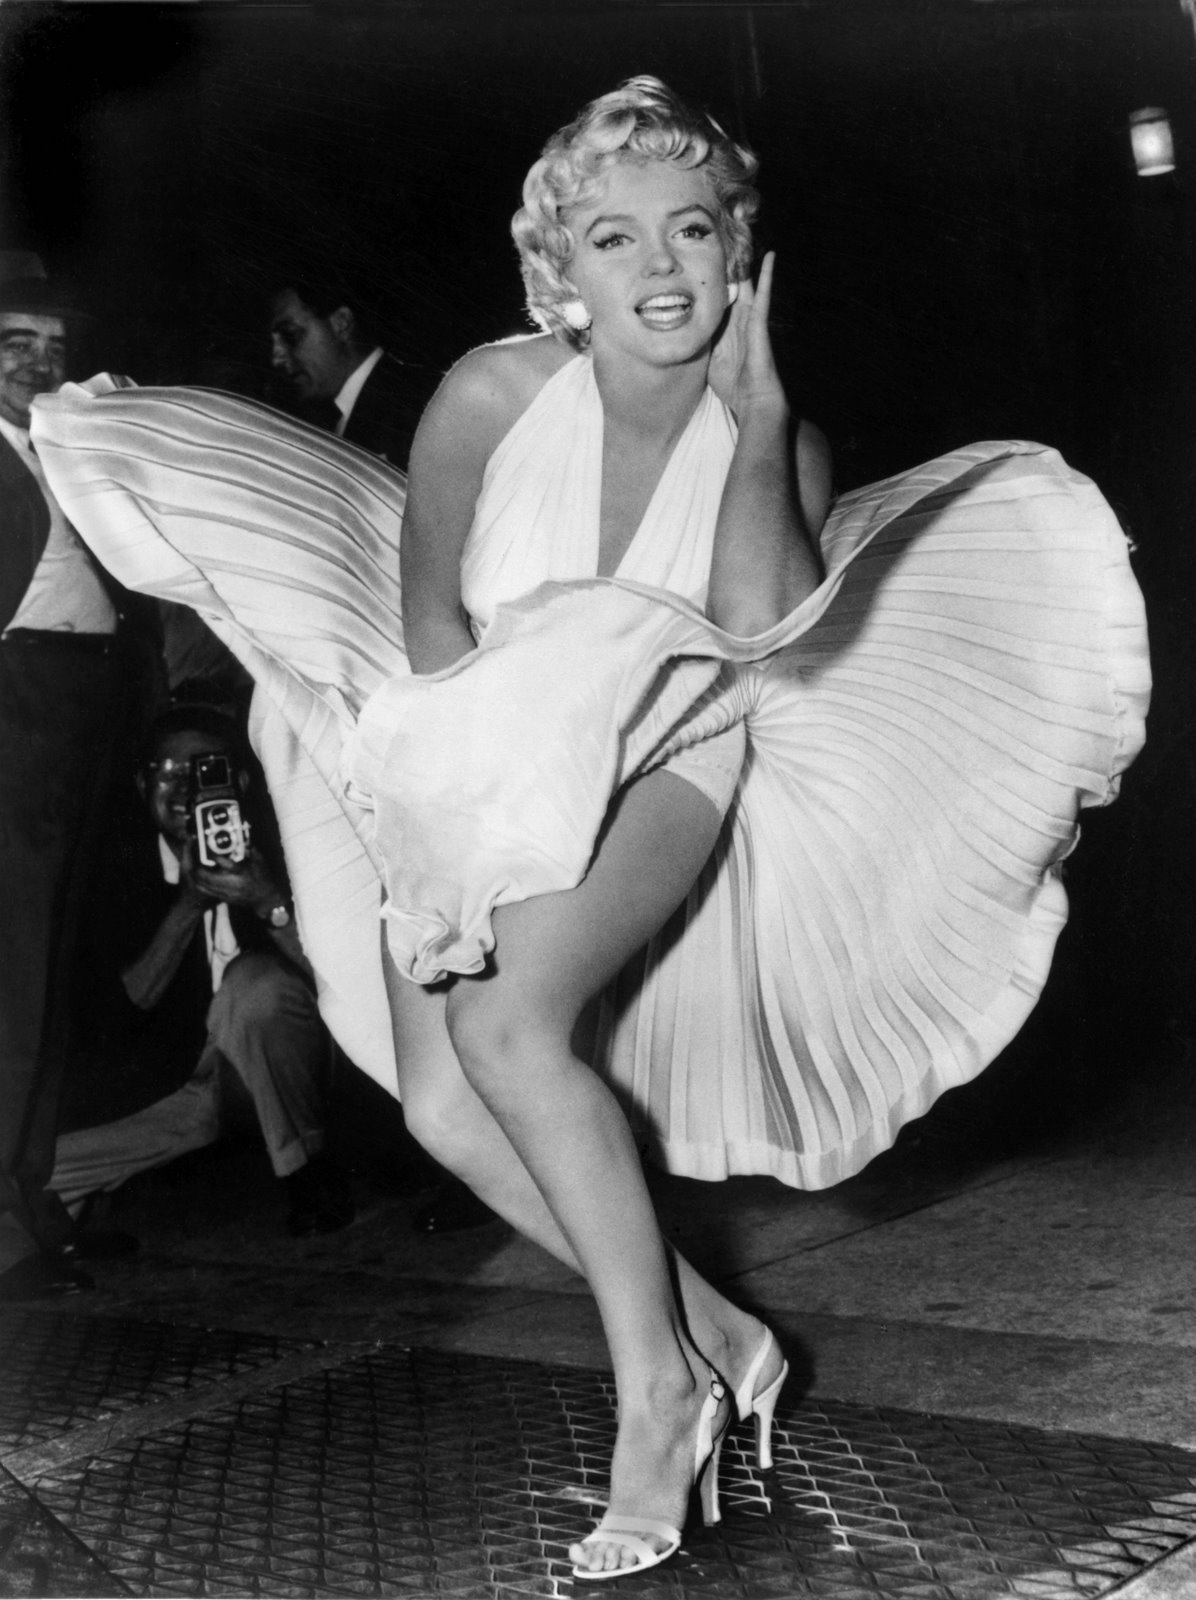 Marilyn Monroe in dress Debbie Reynolds The Auction Press Release